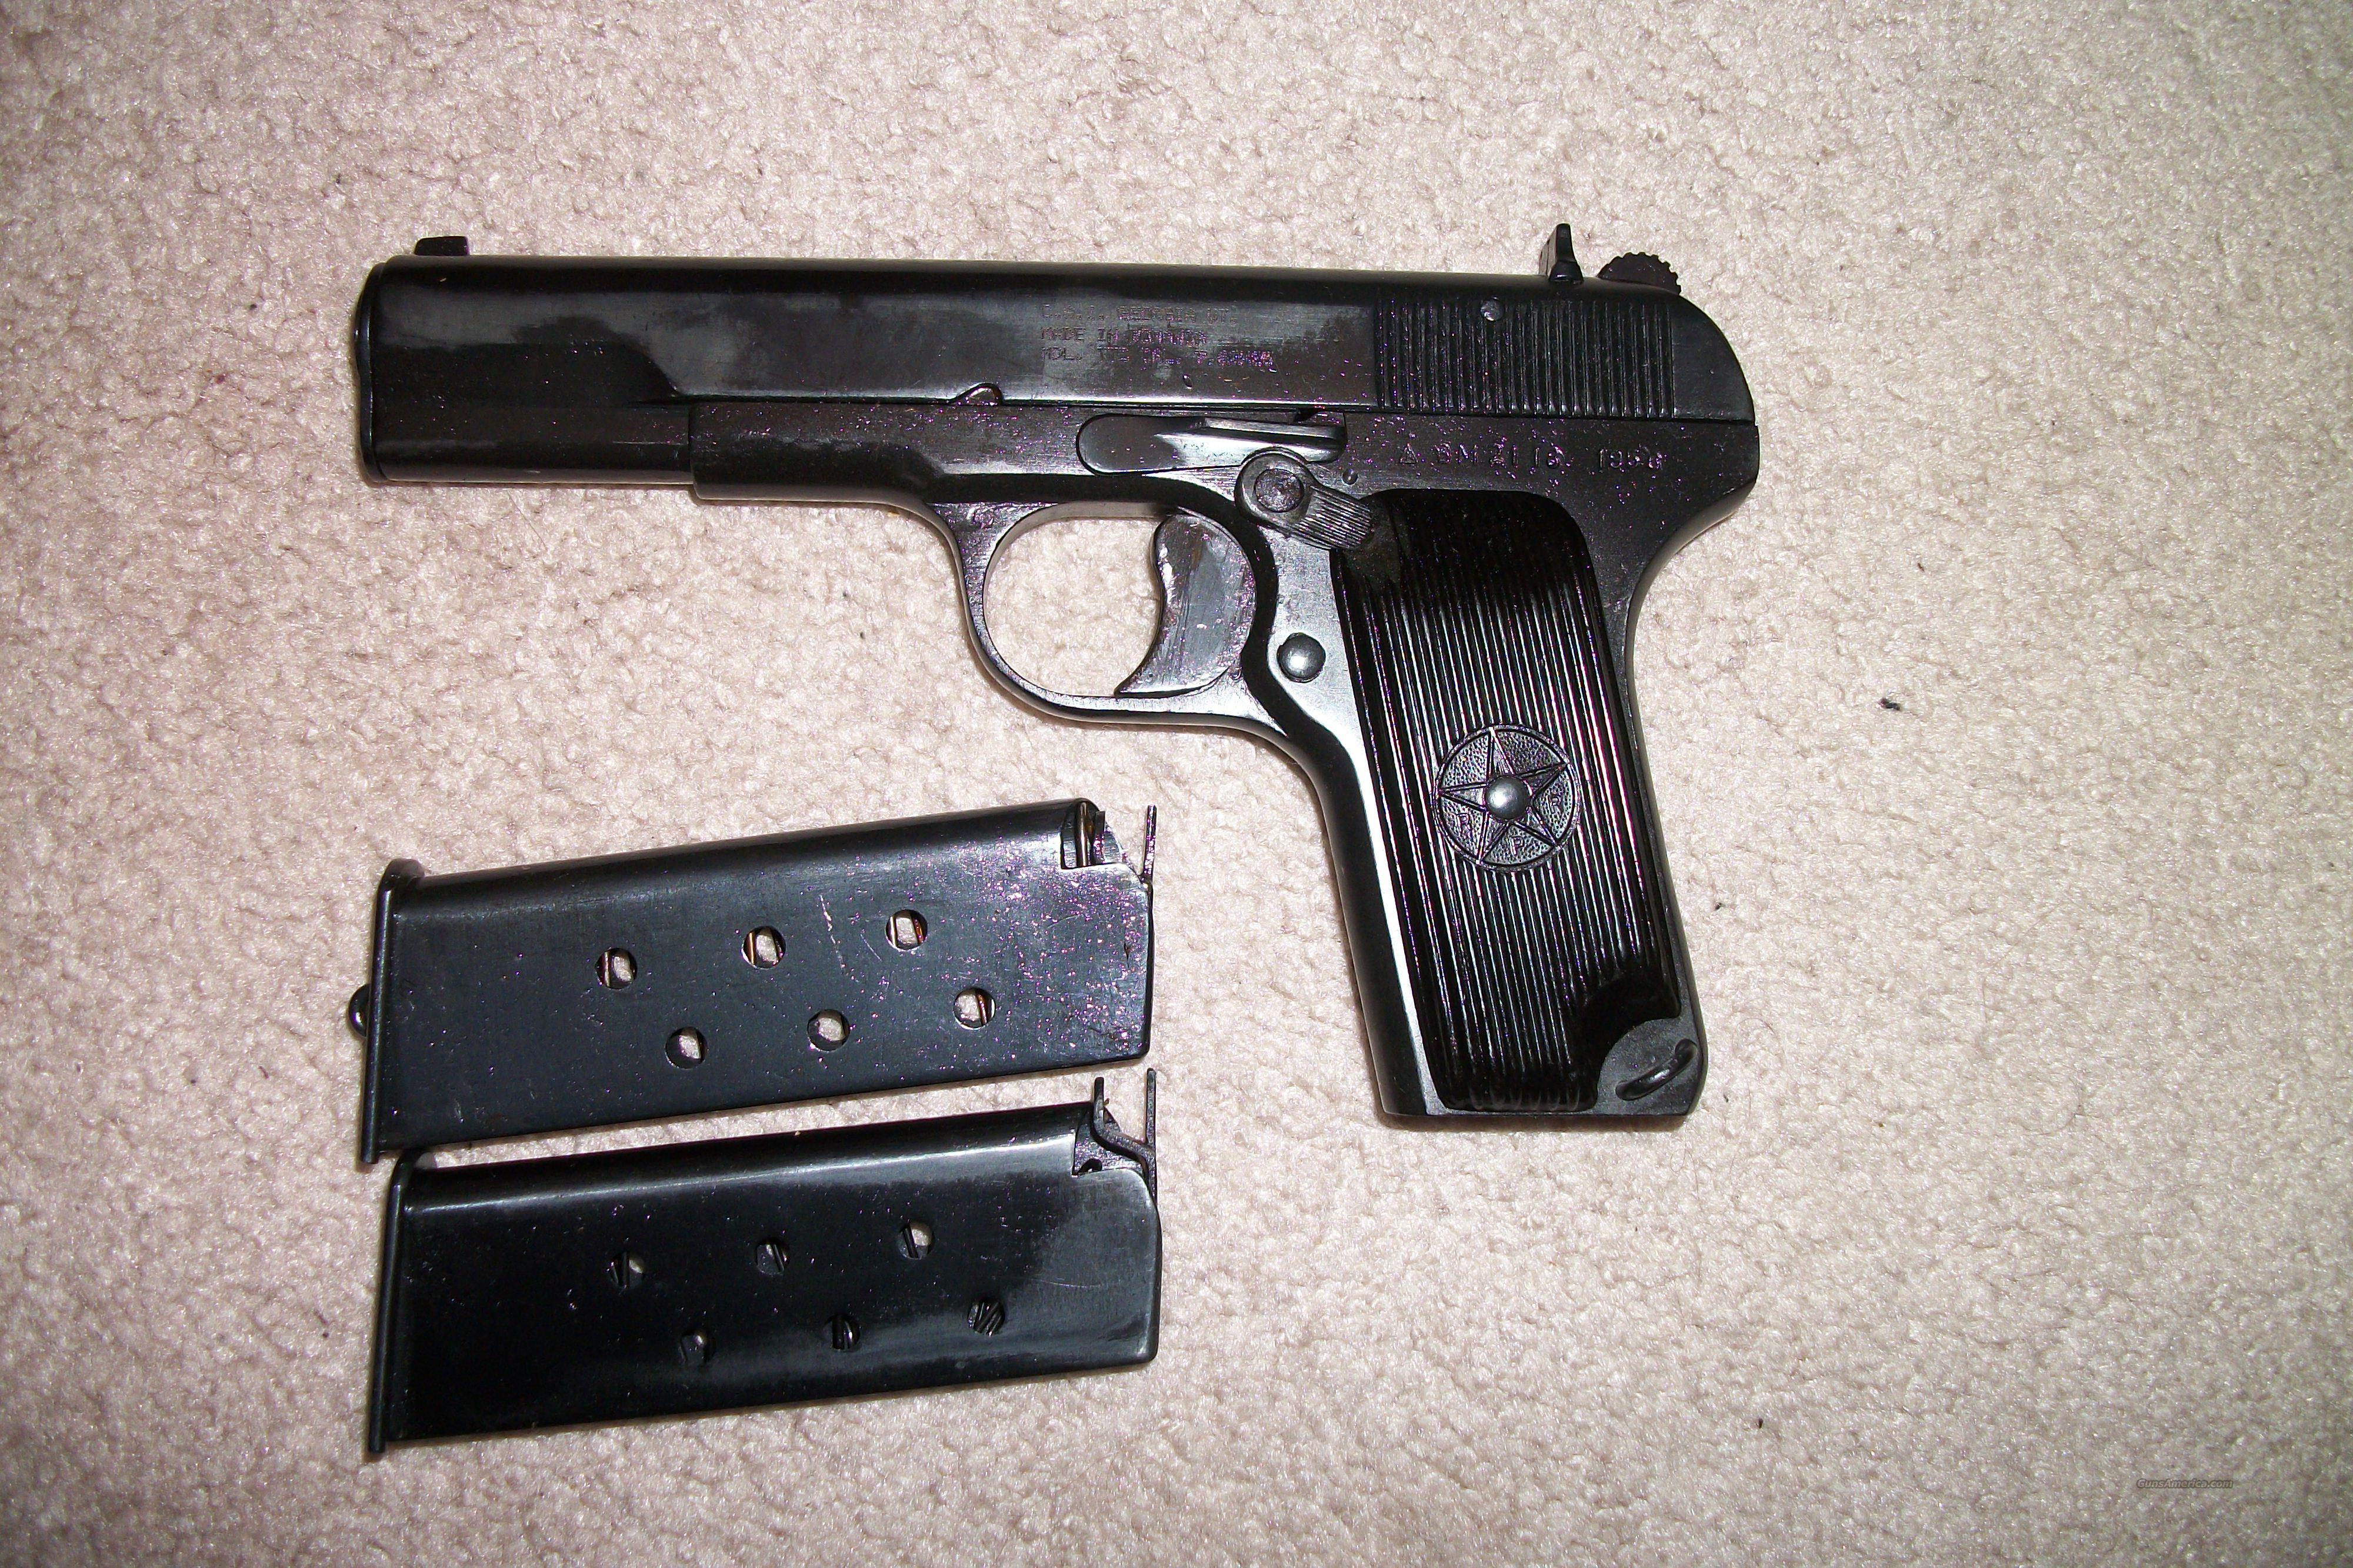 Romanian Tokarev holster and 2 mags  Guns > Pistols > 1911 Pistol Copies (non-Colt)